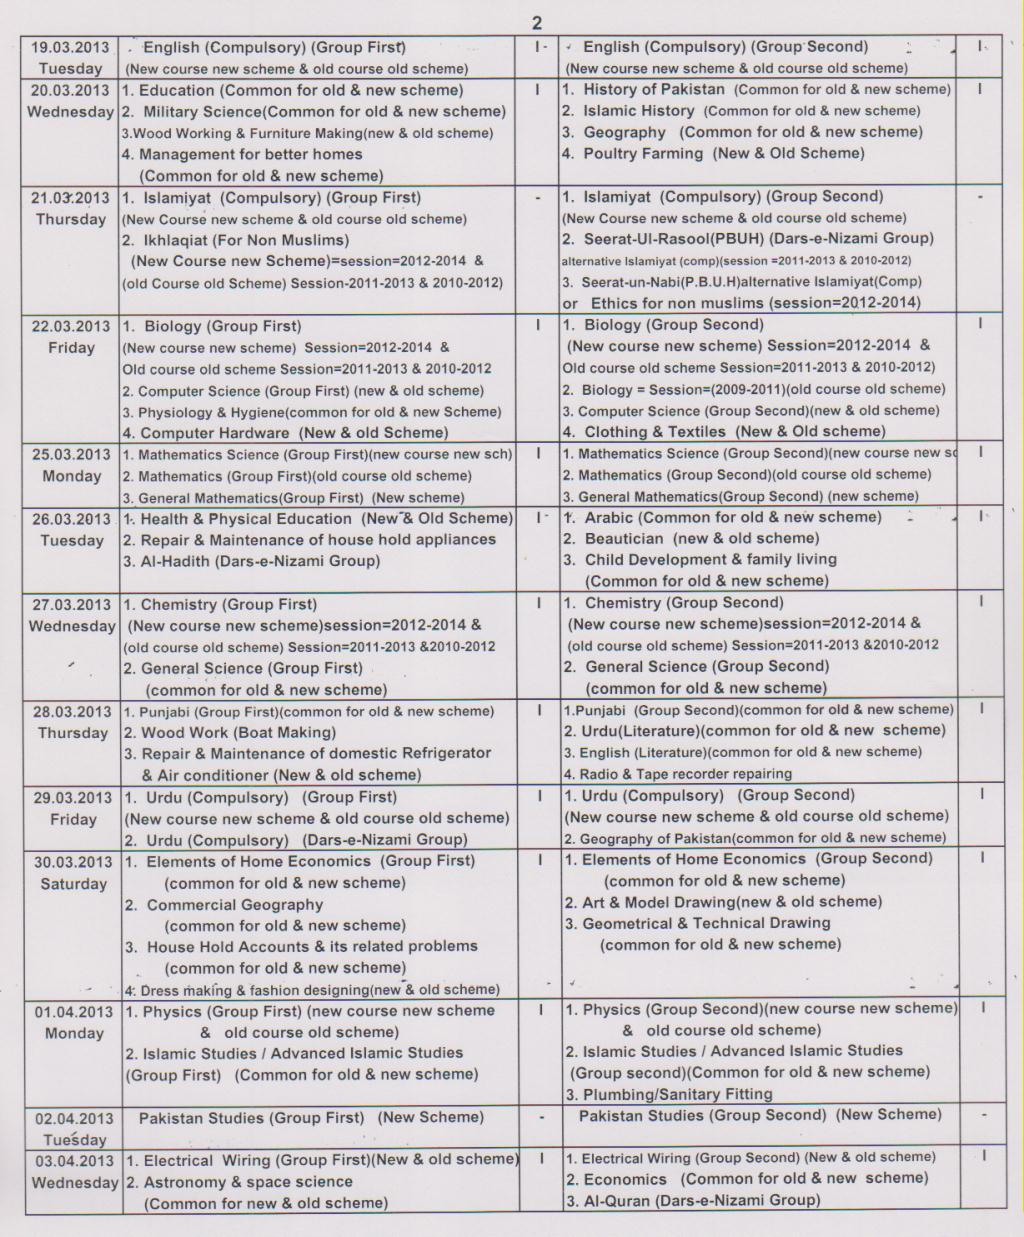 Bise Sargodha Board 9th Class Date sheet 2013 9th and 10th Class Date Sheet Bise Sargodha Board 2013